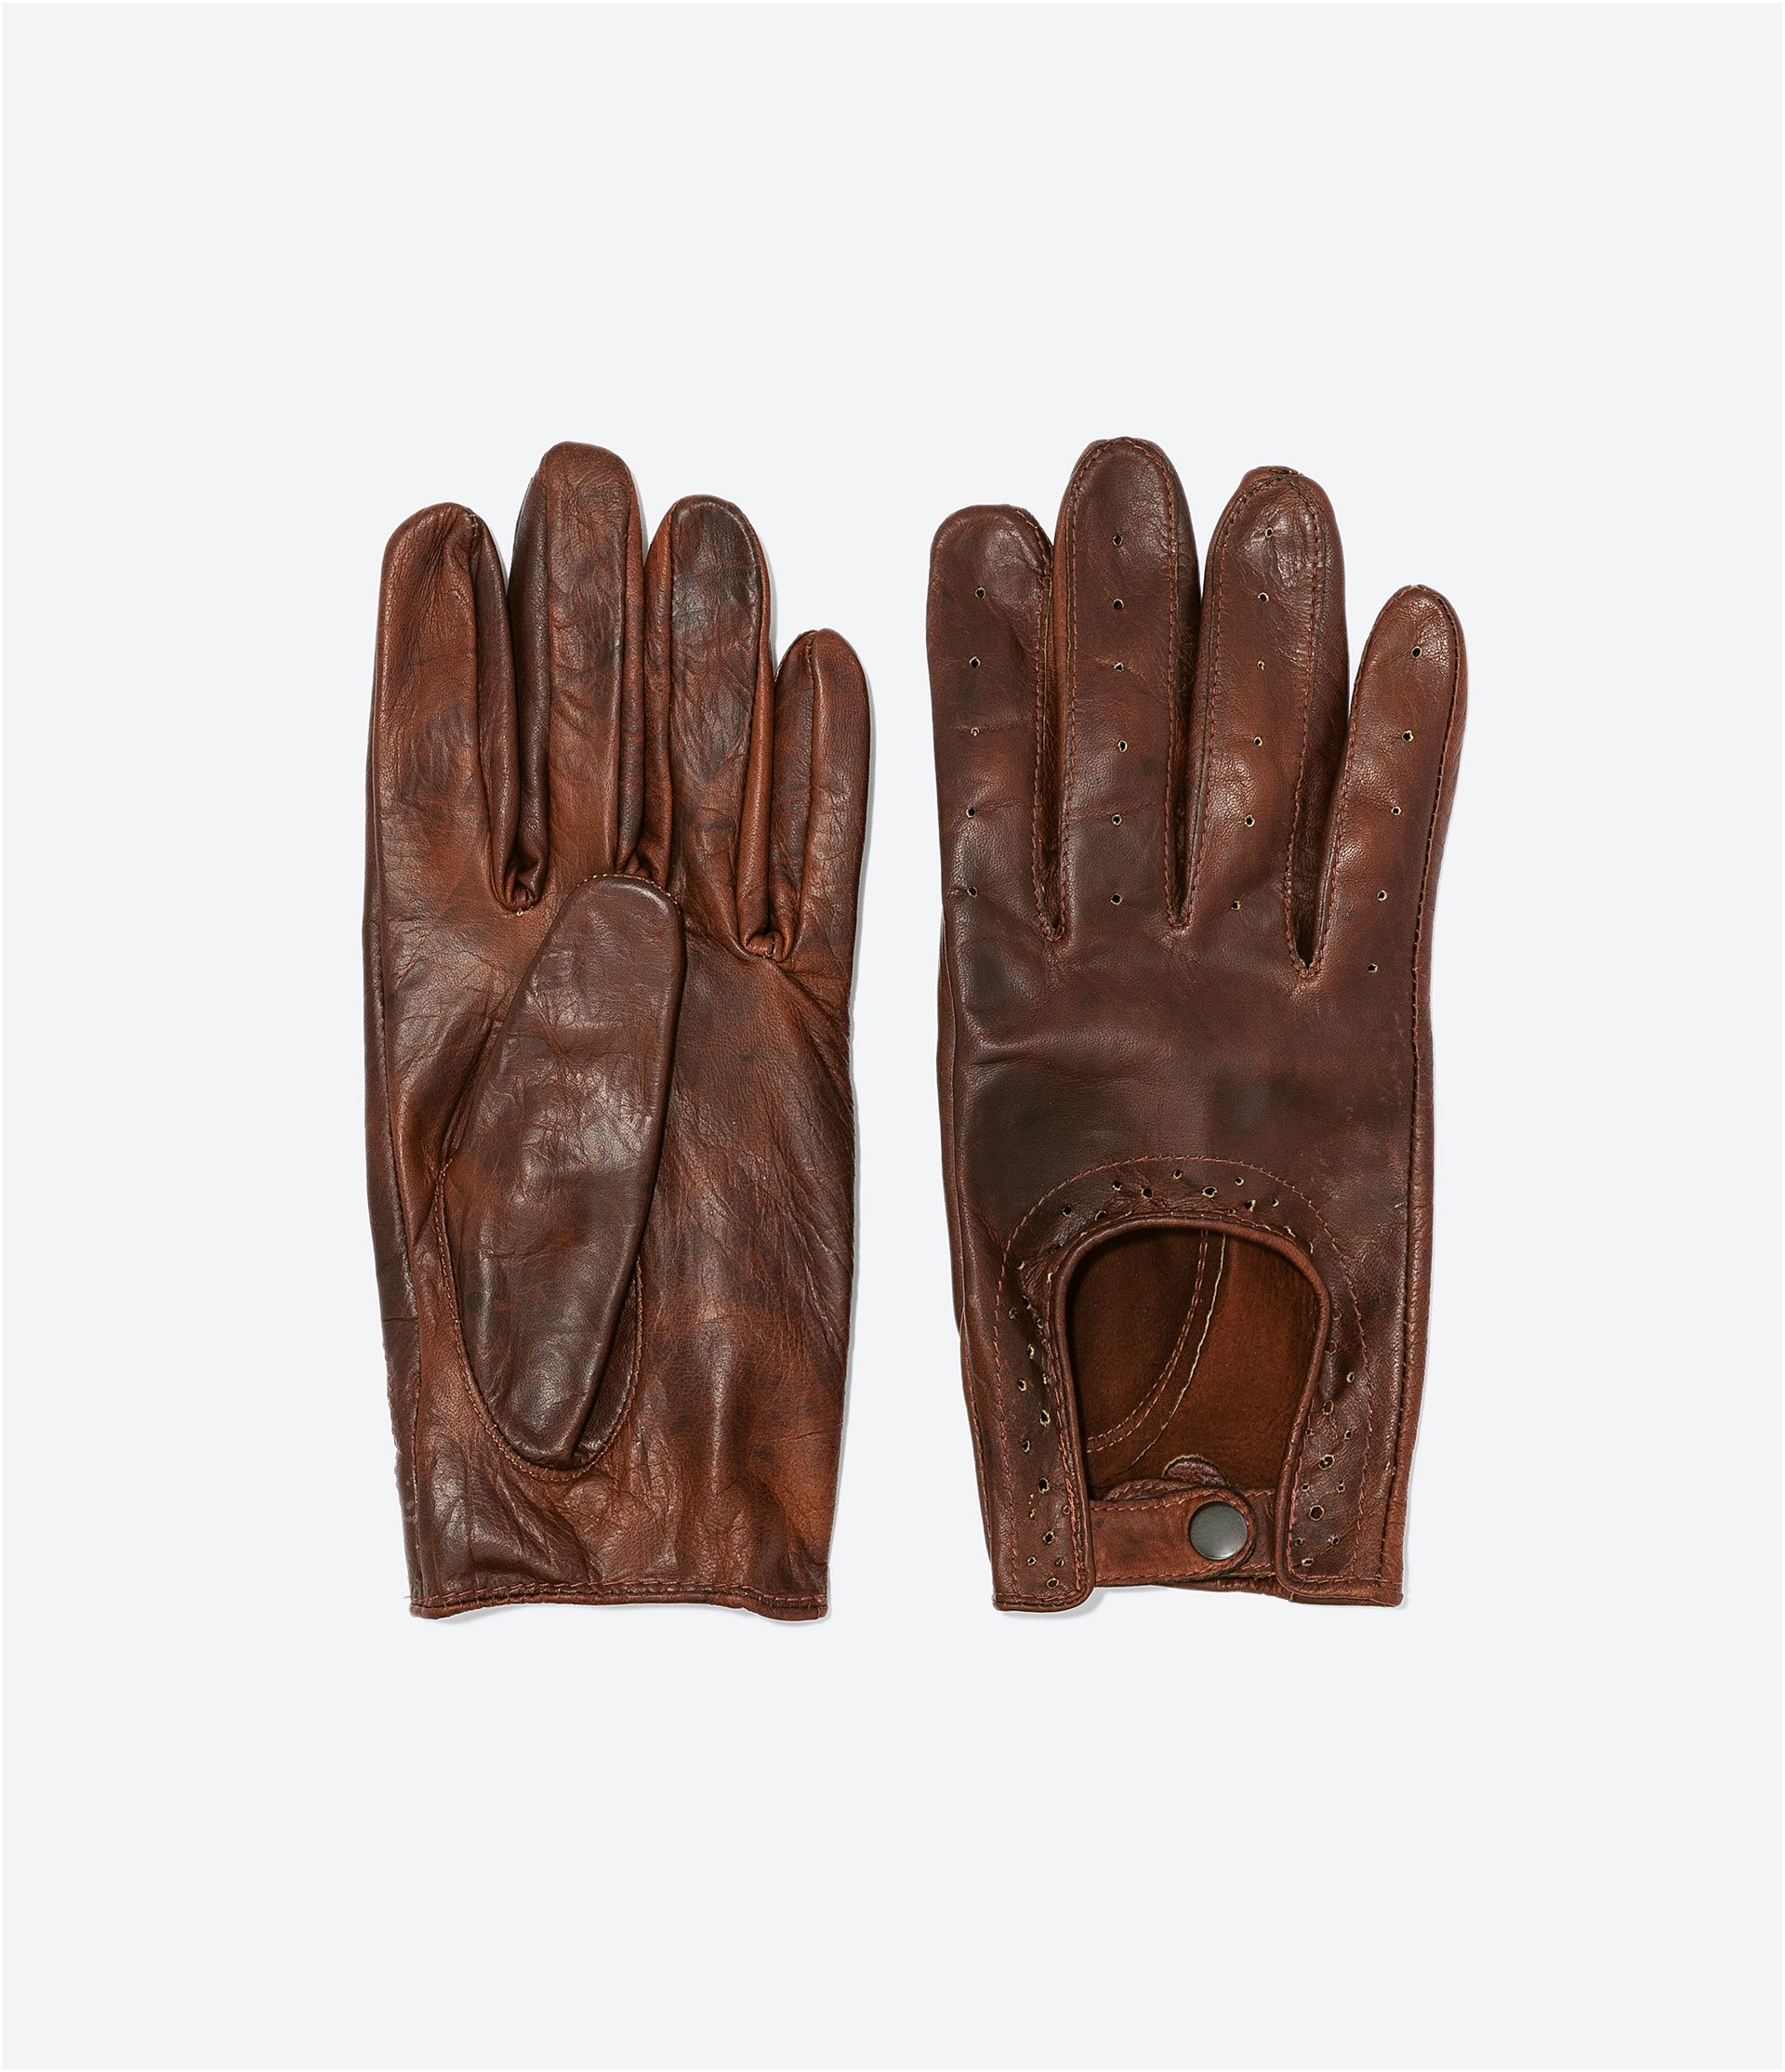 Mens leather driving gloves australia - Driving Gloves Coach Coach Mens Driving Gloves Gloves